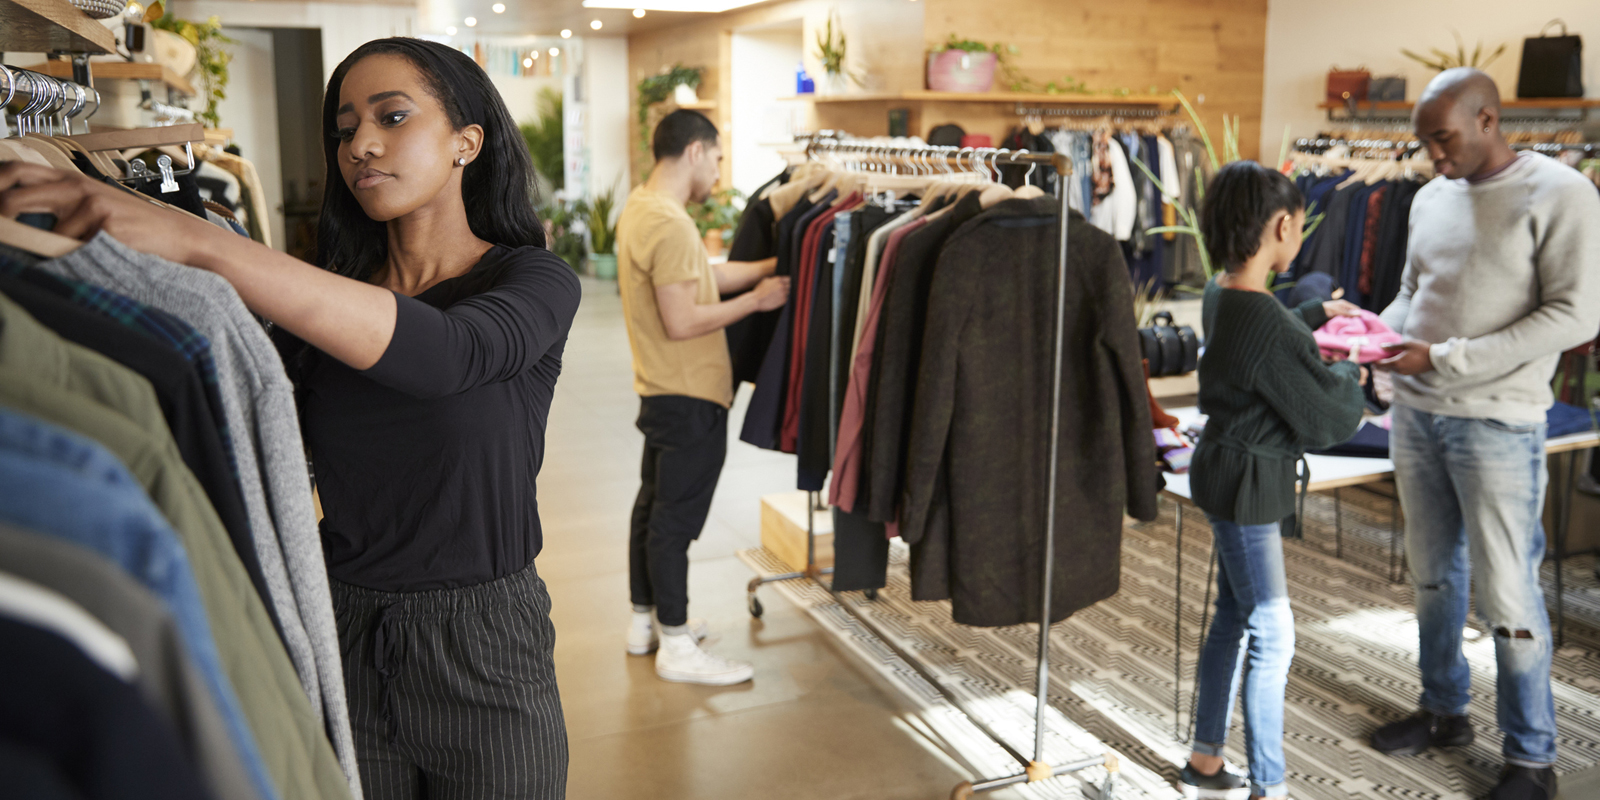 By Popular Demand, More Online Stores Opening Shops